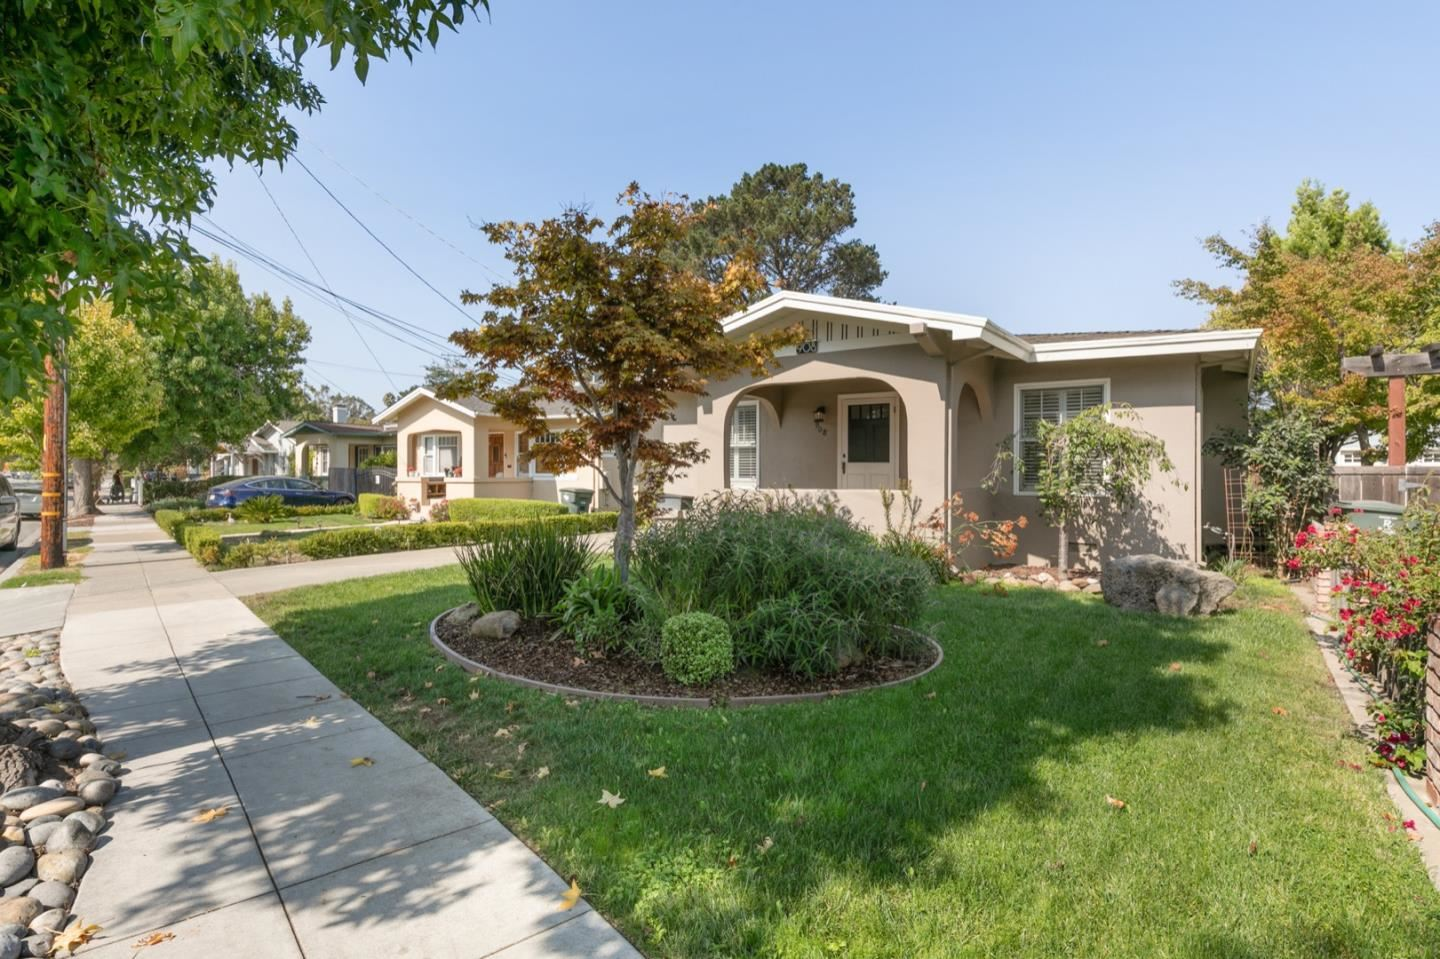 Photo for 908 Morrell AVE, BURLINGAME, CA 94010 (MLS # ML81812688)